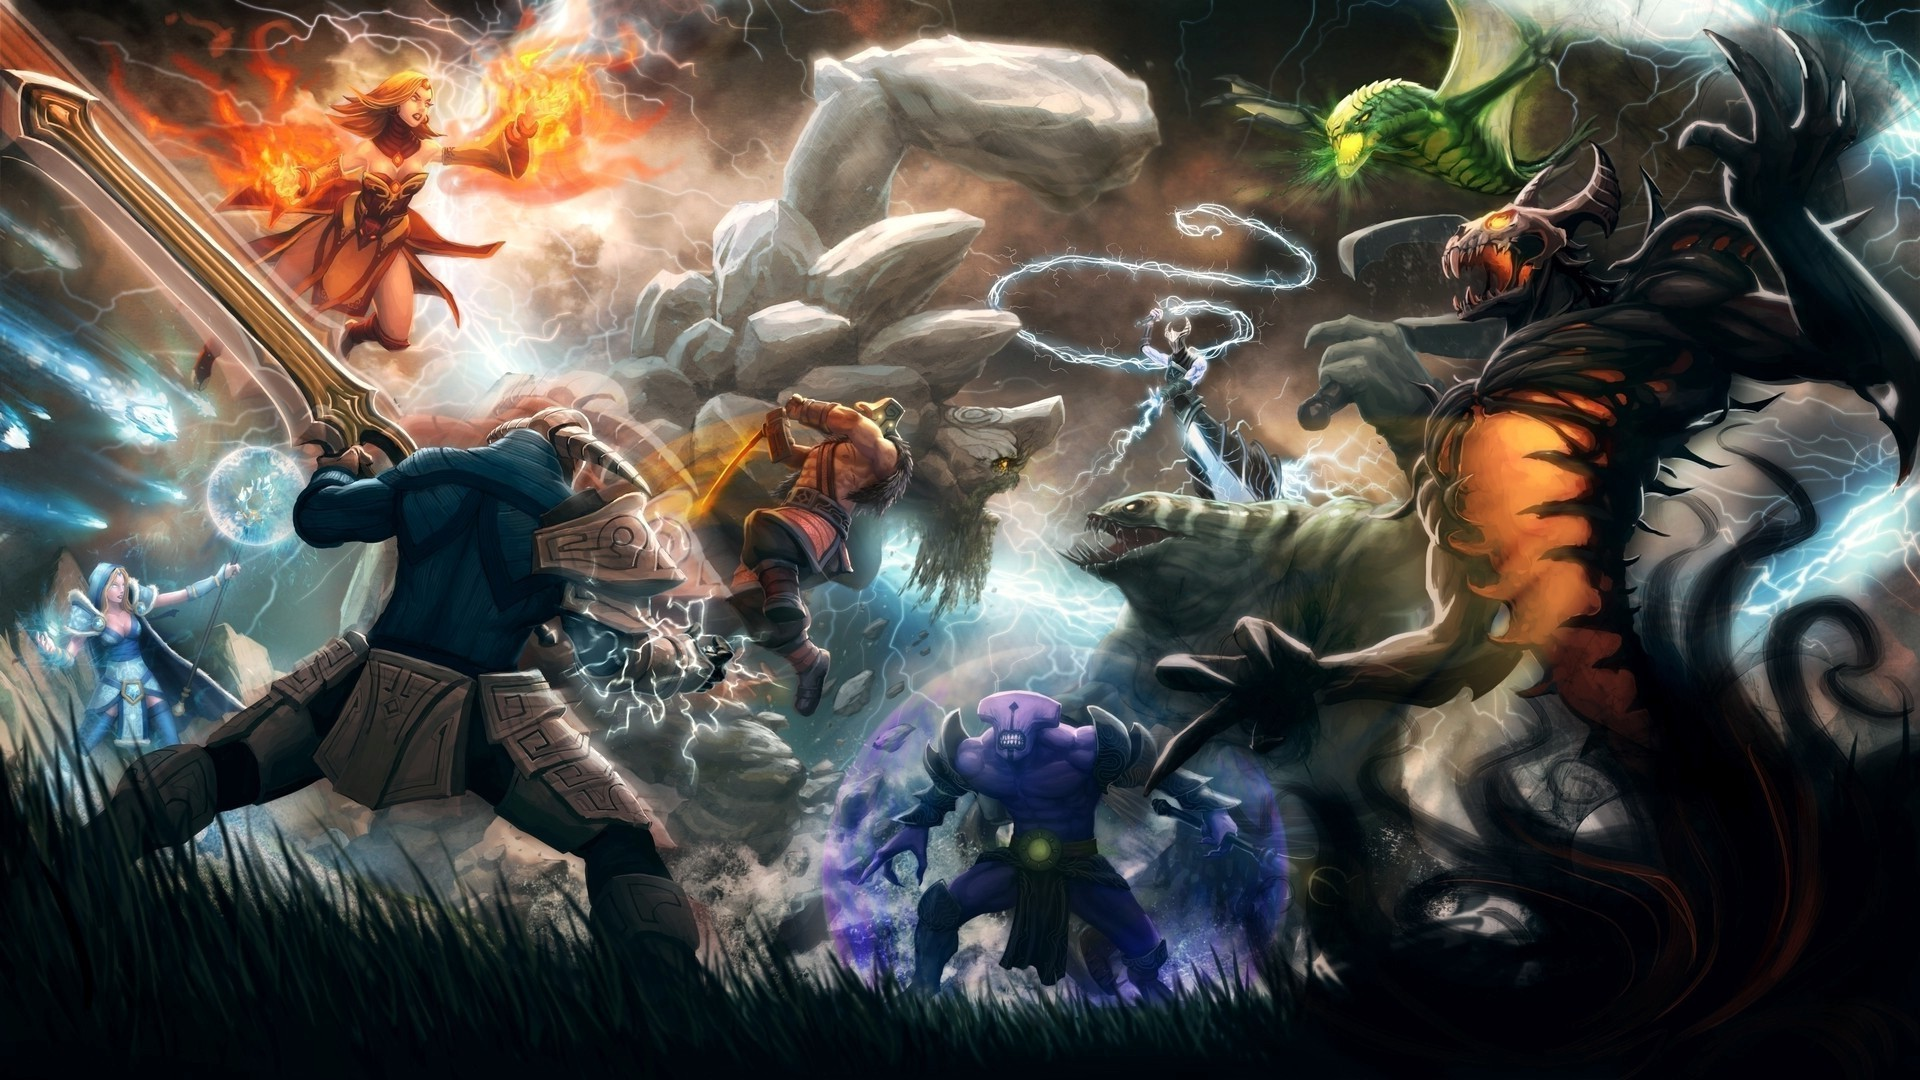 1920x1080 Dota 2 Wallpapers  Hd Awesome Wallpapers Collection Dota 2  Wallpapers